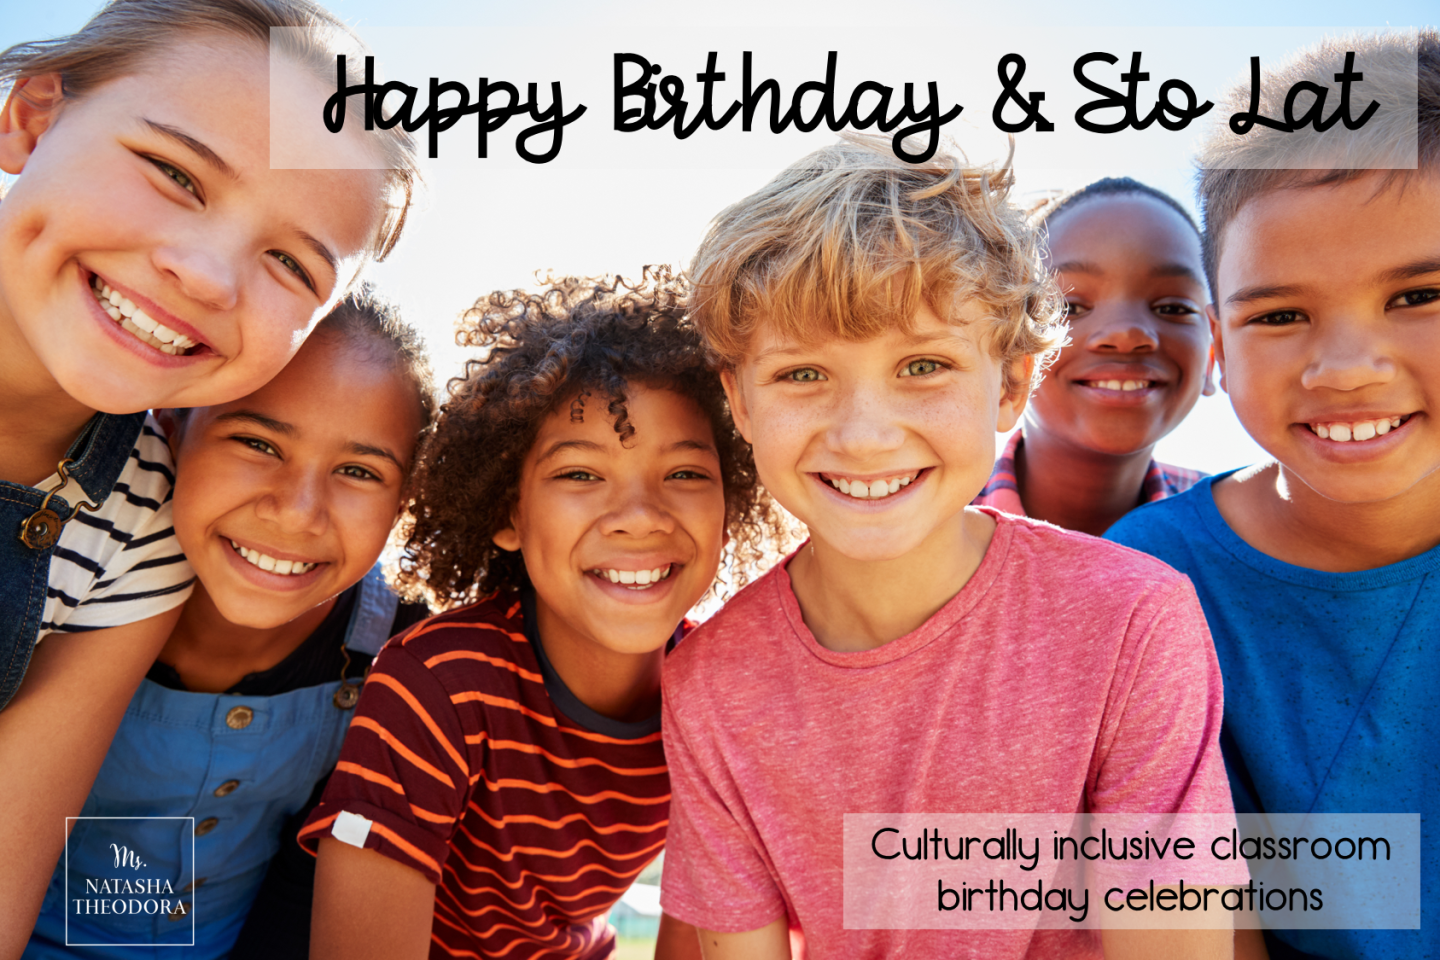 Happy Birthday, Sto Lat, Joyeux Anniversaire- Culturally Inclusive Birthday Celebrations